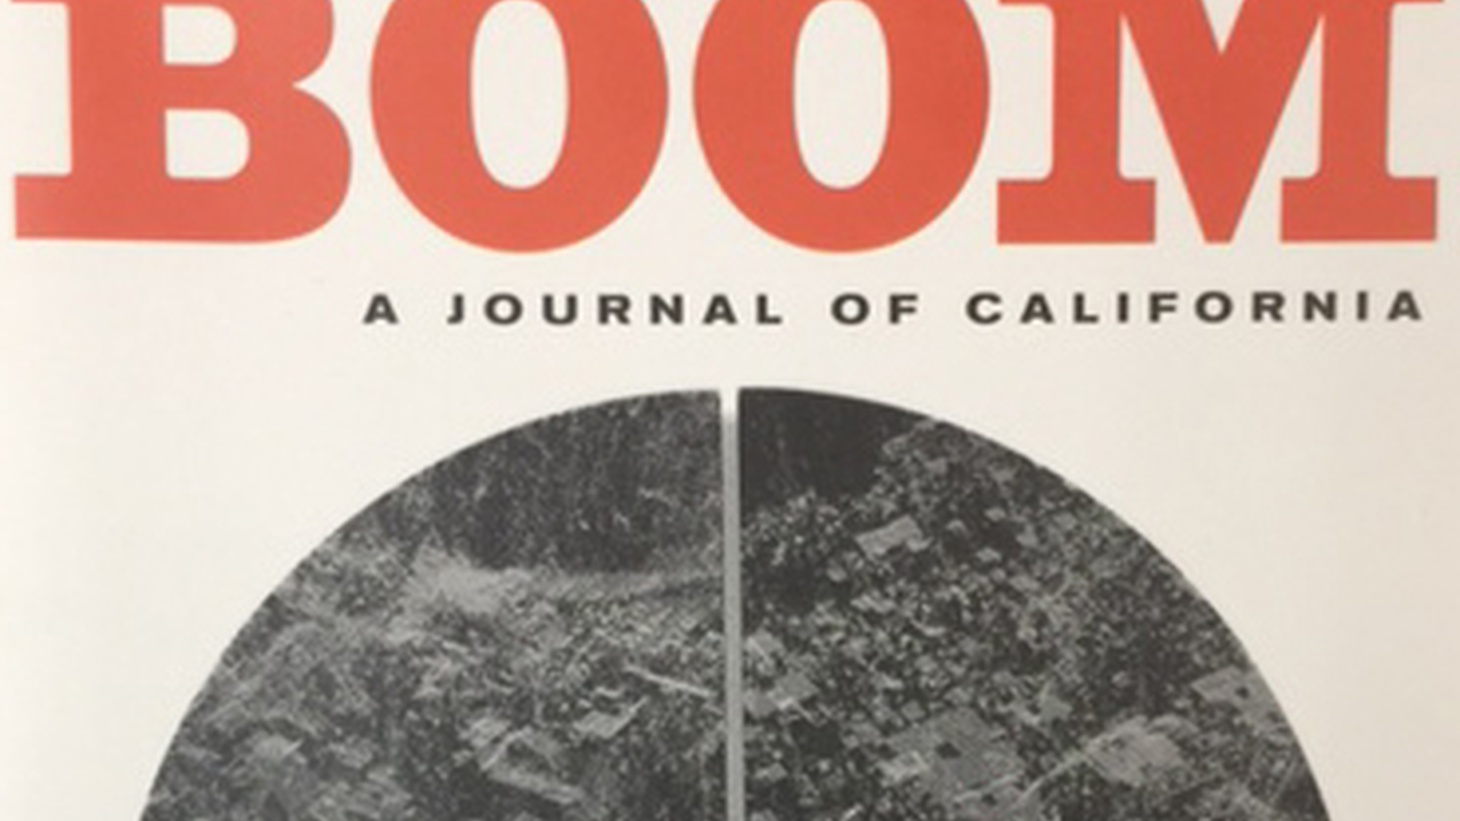 California's growth and development have been tremendous in the 20th century. But is the 21st century version of California ready or does the Golden State need a re-coding of sorts?